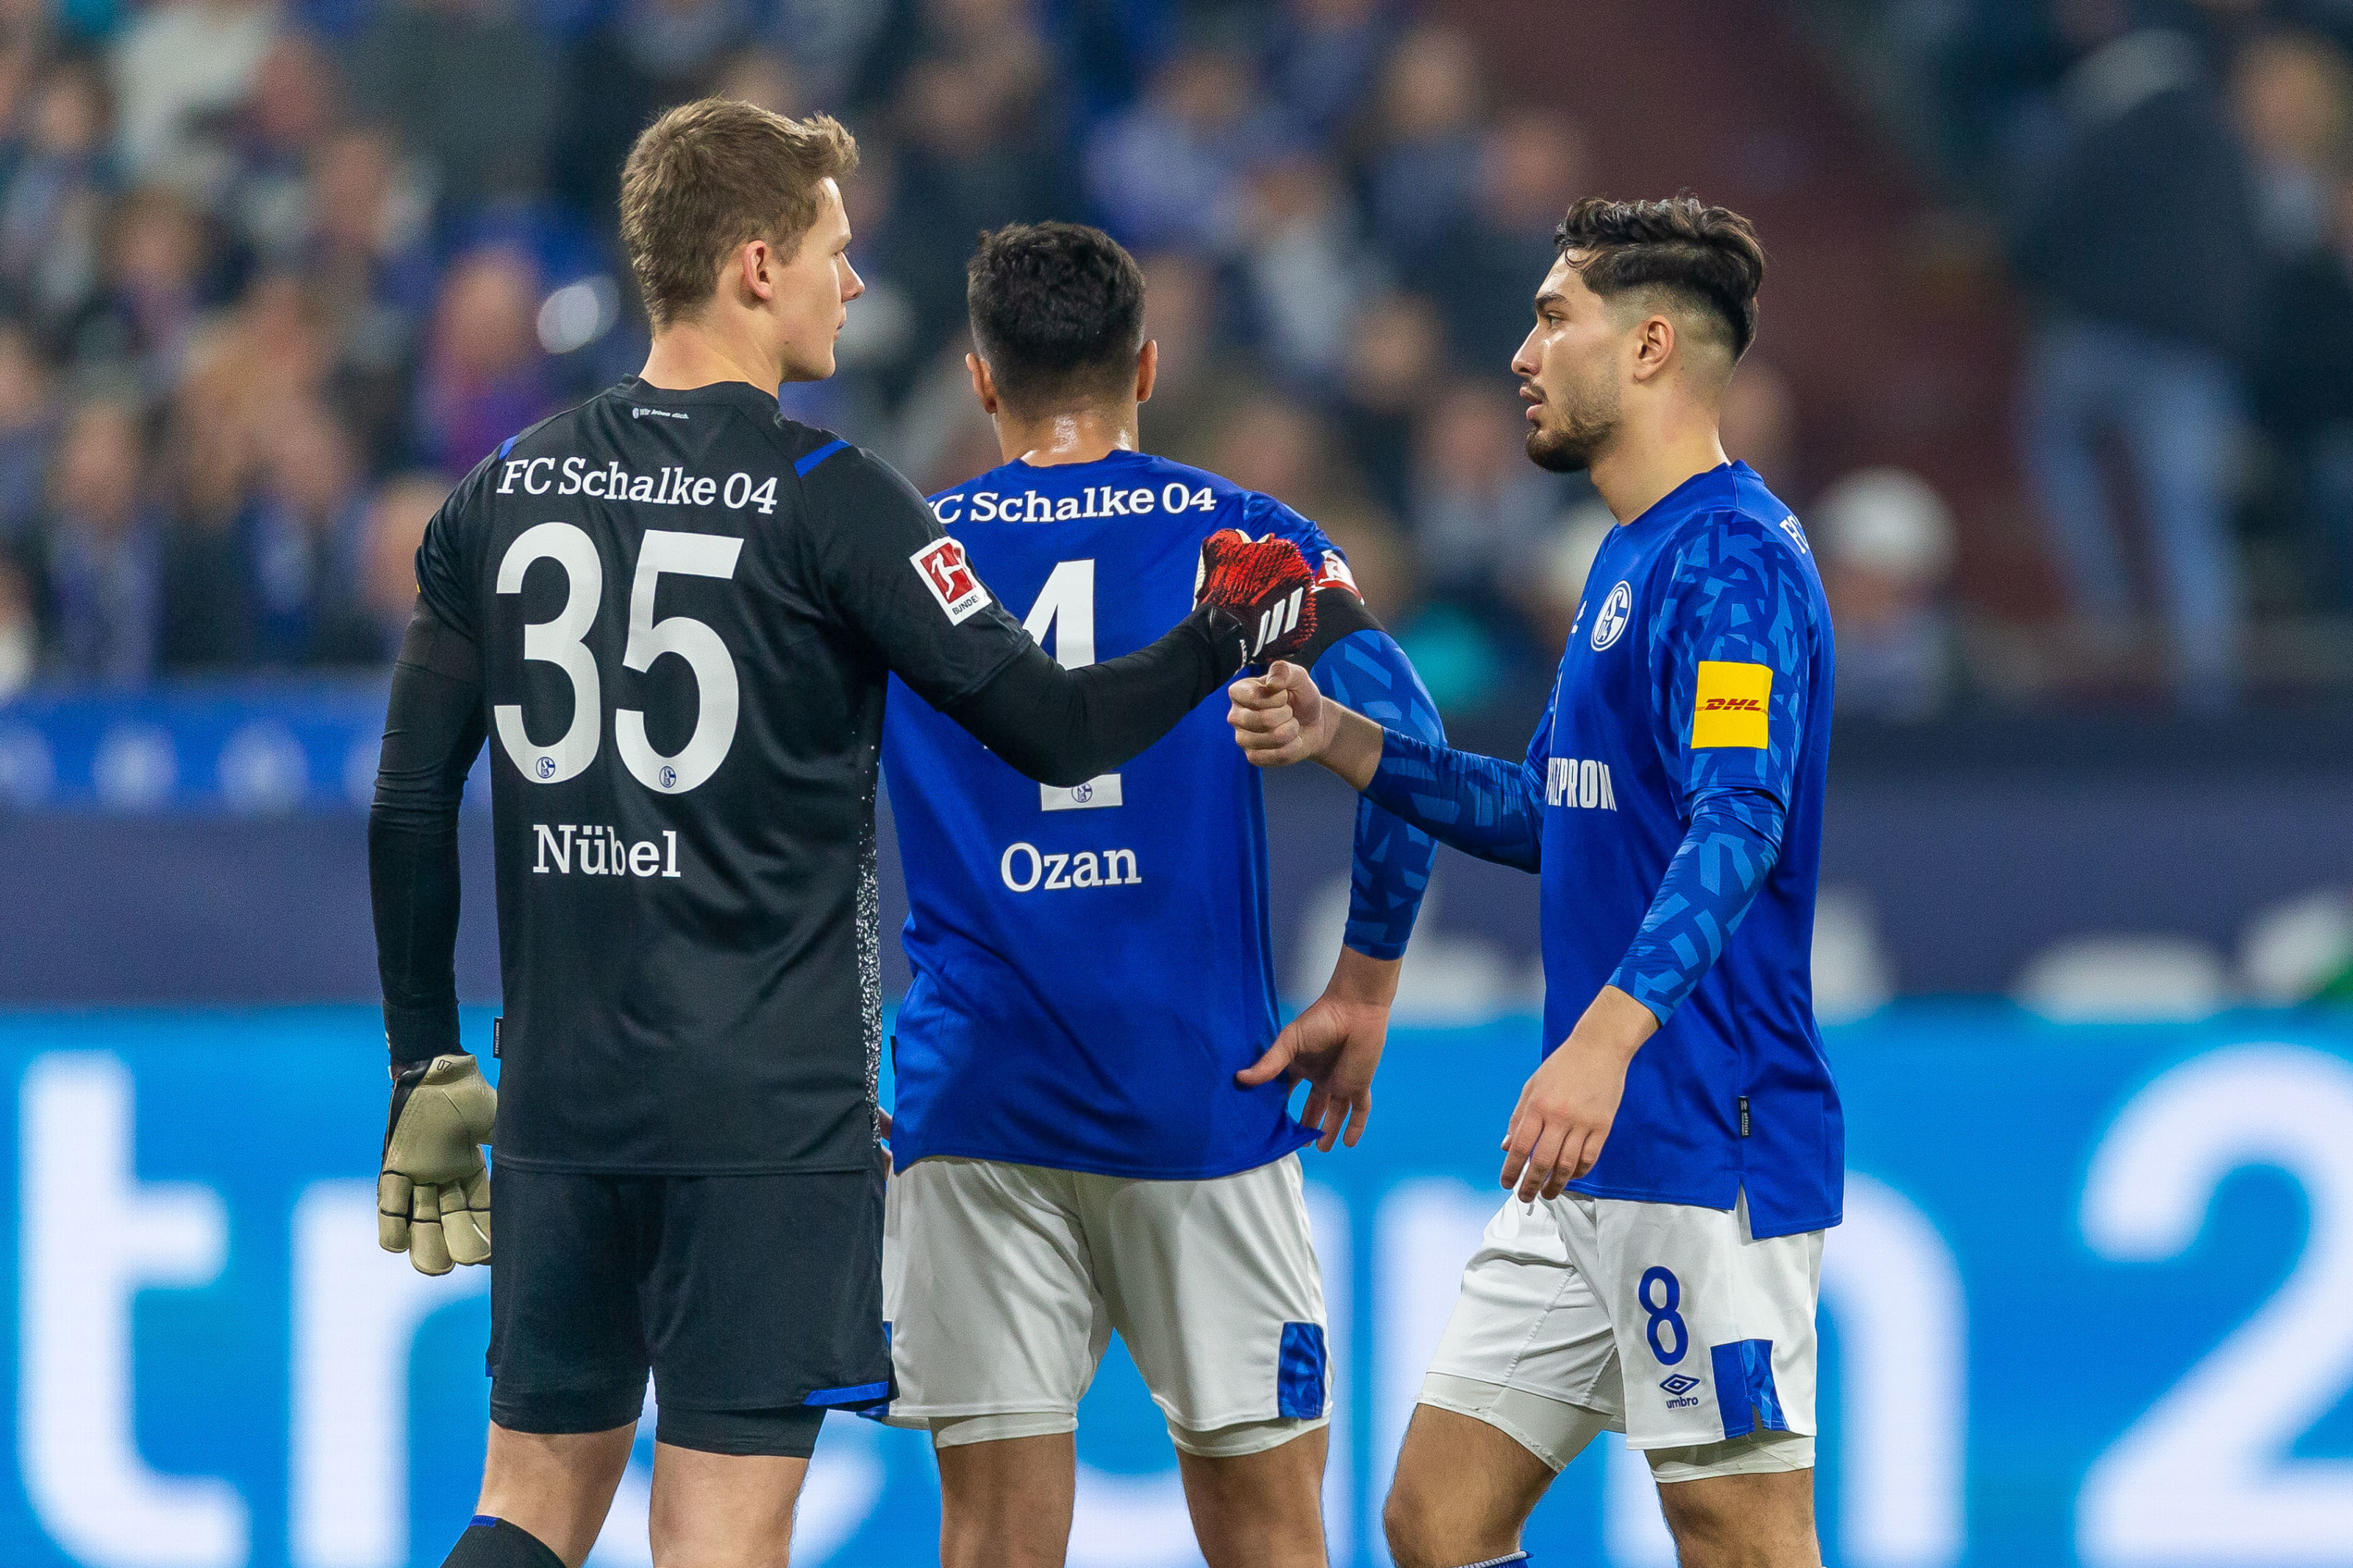 Schalke: 5 players who must step up after loss to RB Leipzig